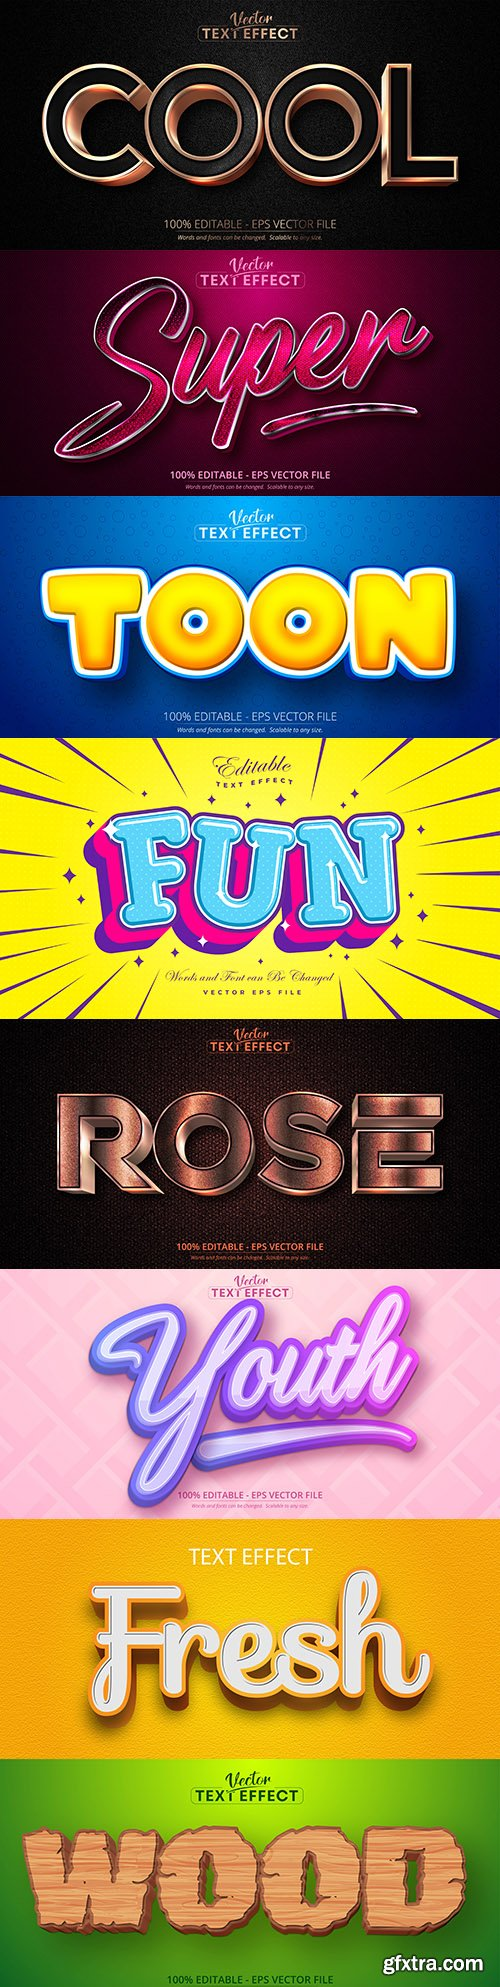 Editable font and 3d effect text design collection illustration 14